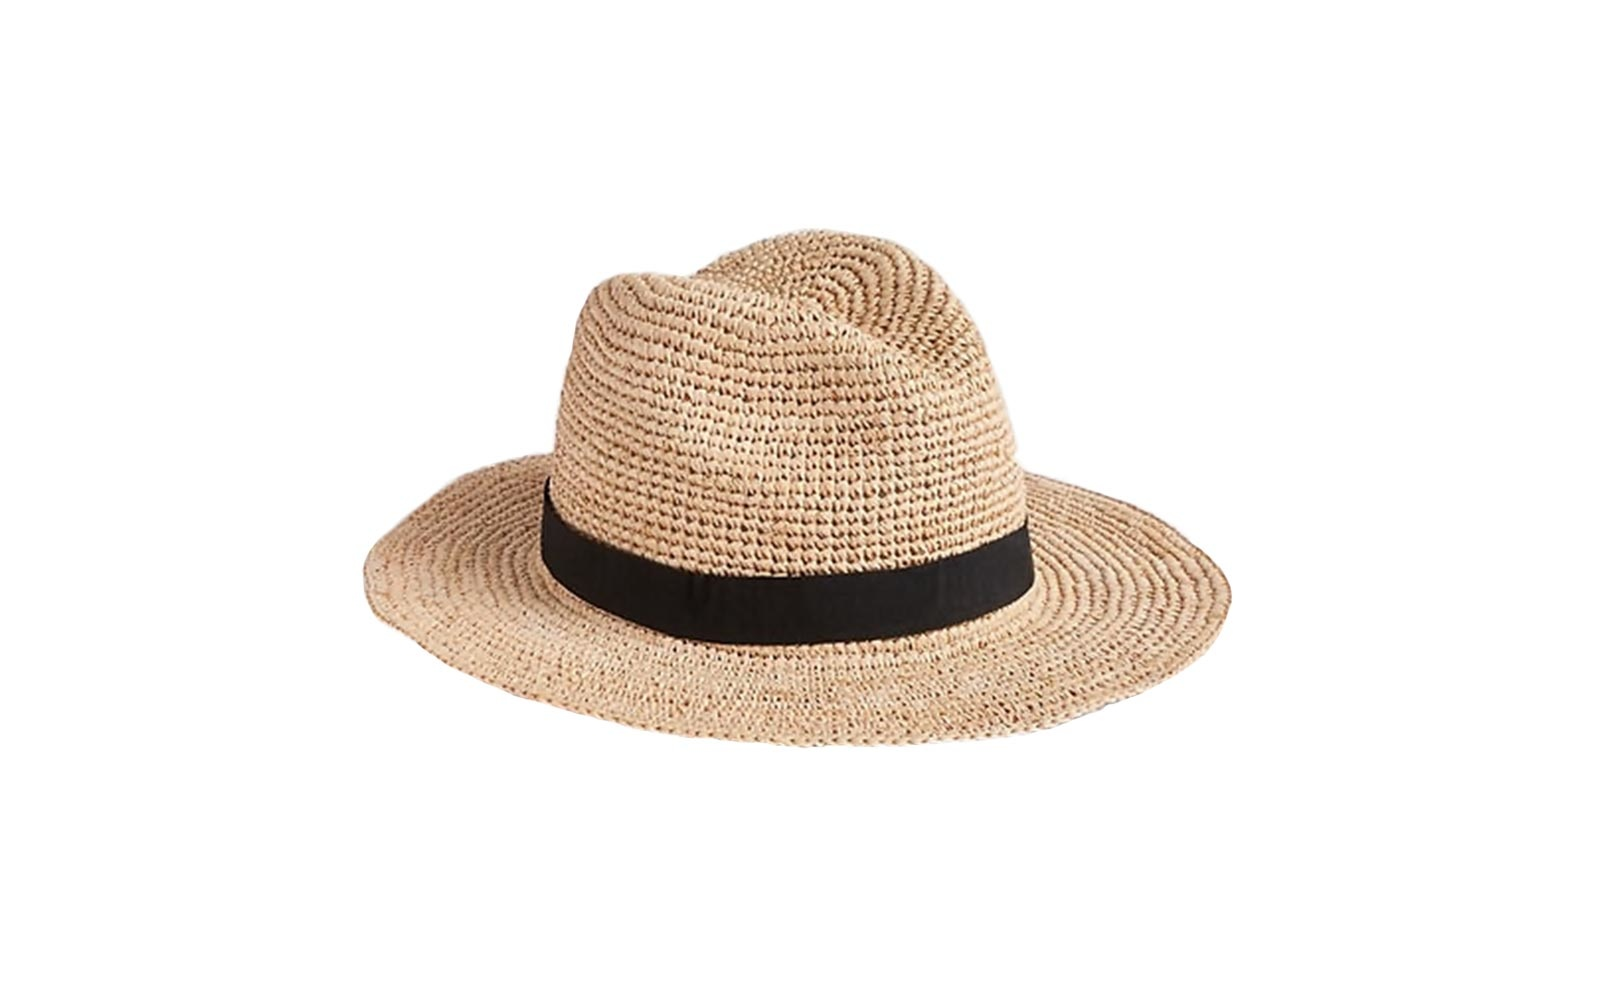 d79ce0e530e81 7 Packable Sun Hats That Won t Get Crushed in Your Suitcase